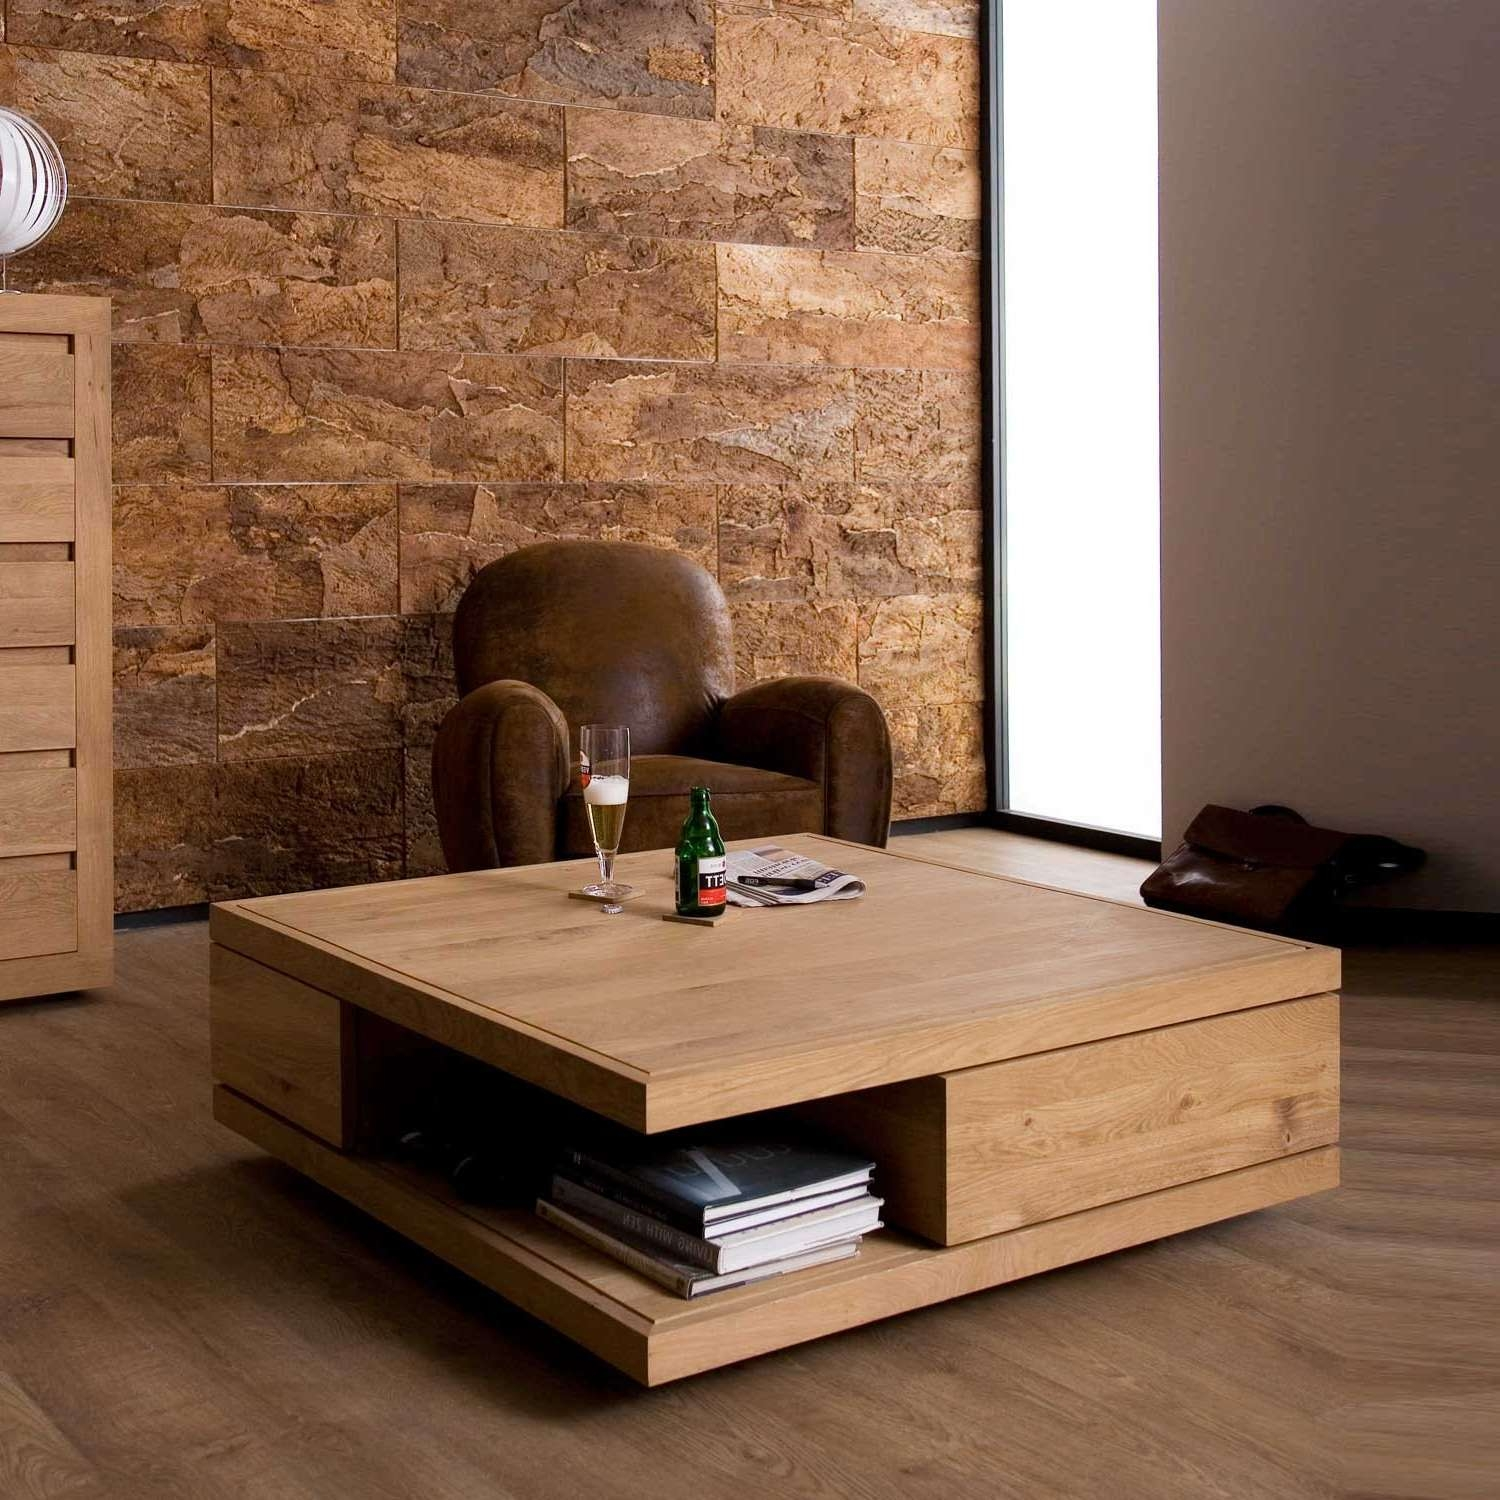 Coffee Table : Large Oak Coffee Table With Drawers Coffee Tables Pertaining To Widely Used Large Oak Coffee Tables (View 6 of 20)